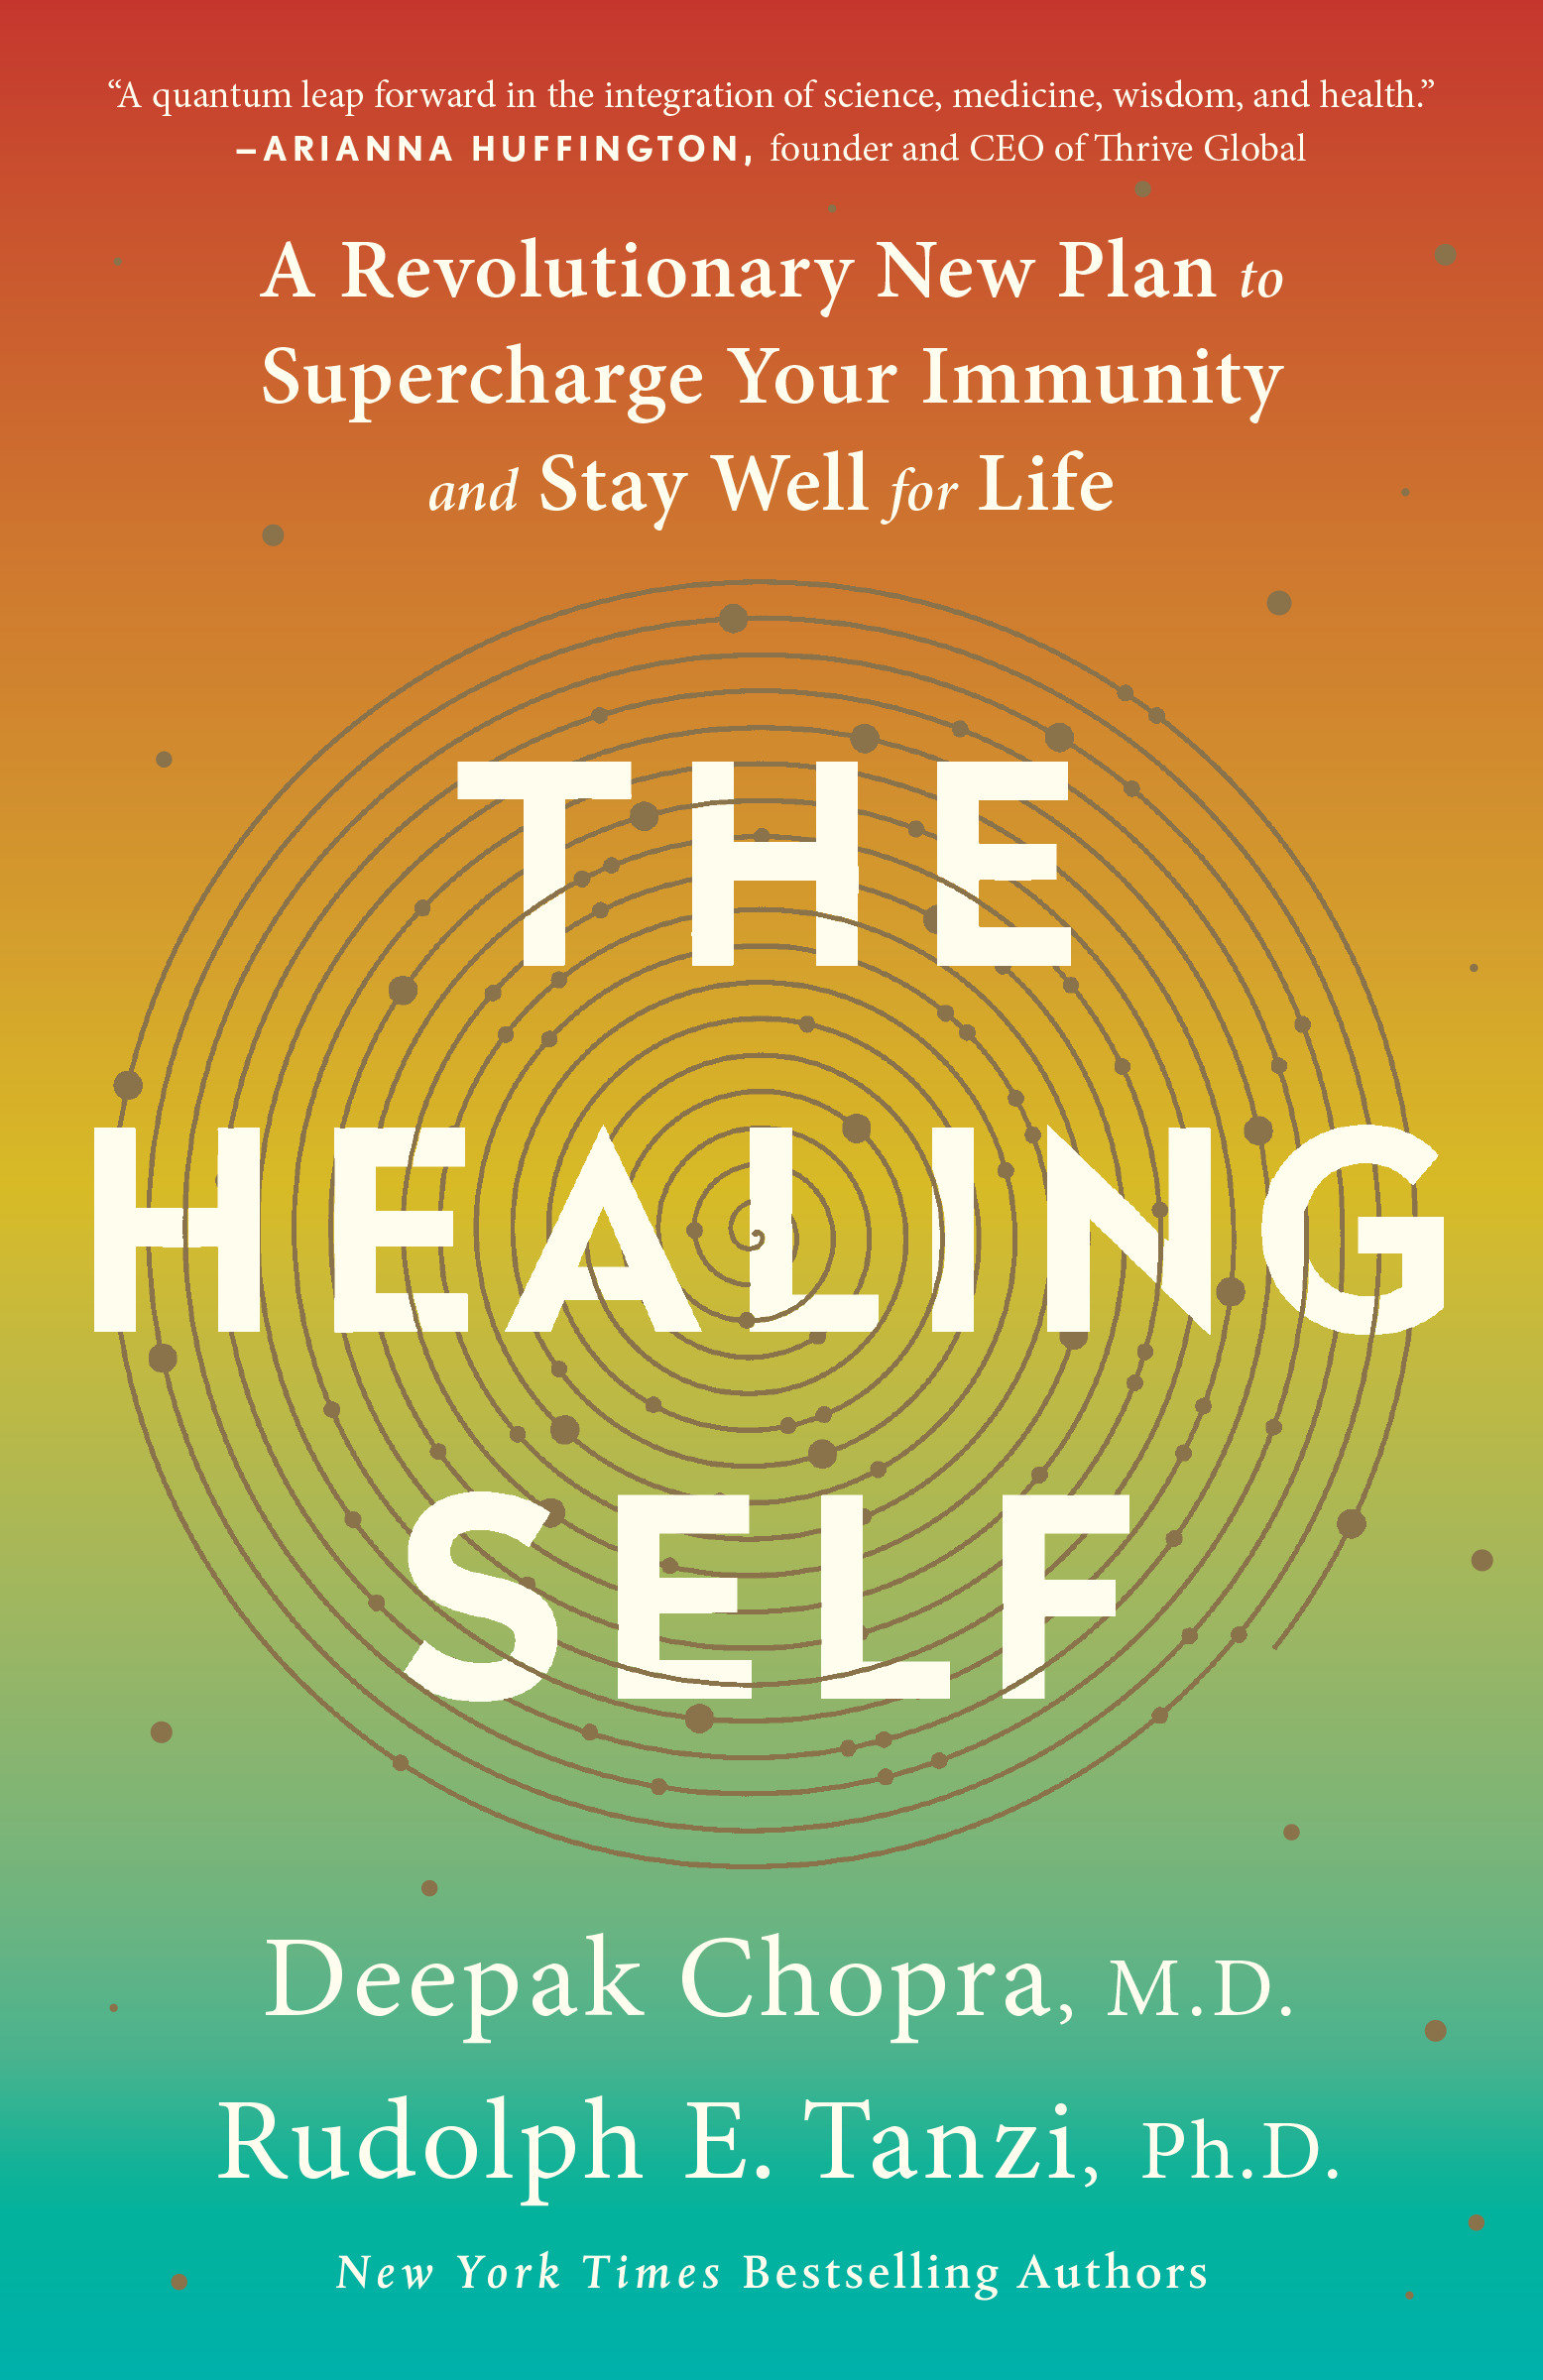 Cover image for The Healing Self [electronic resource] : A Revolutionary New Plan to Supercharge Your Immunity and Stay Well for Life